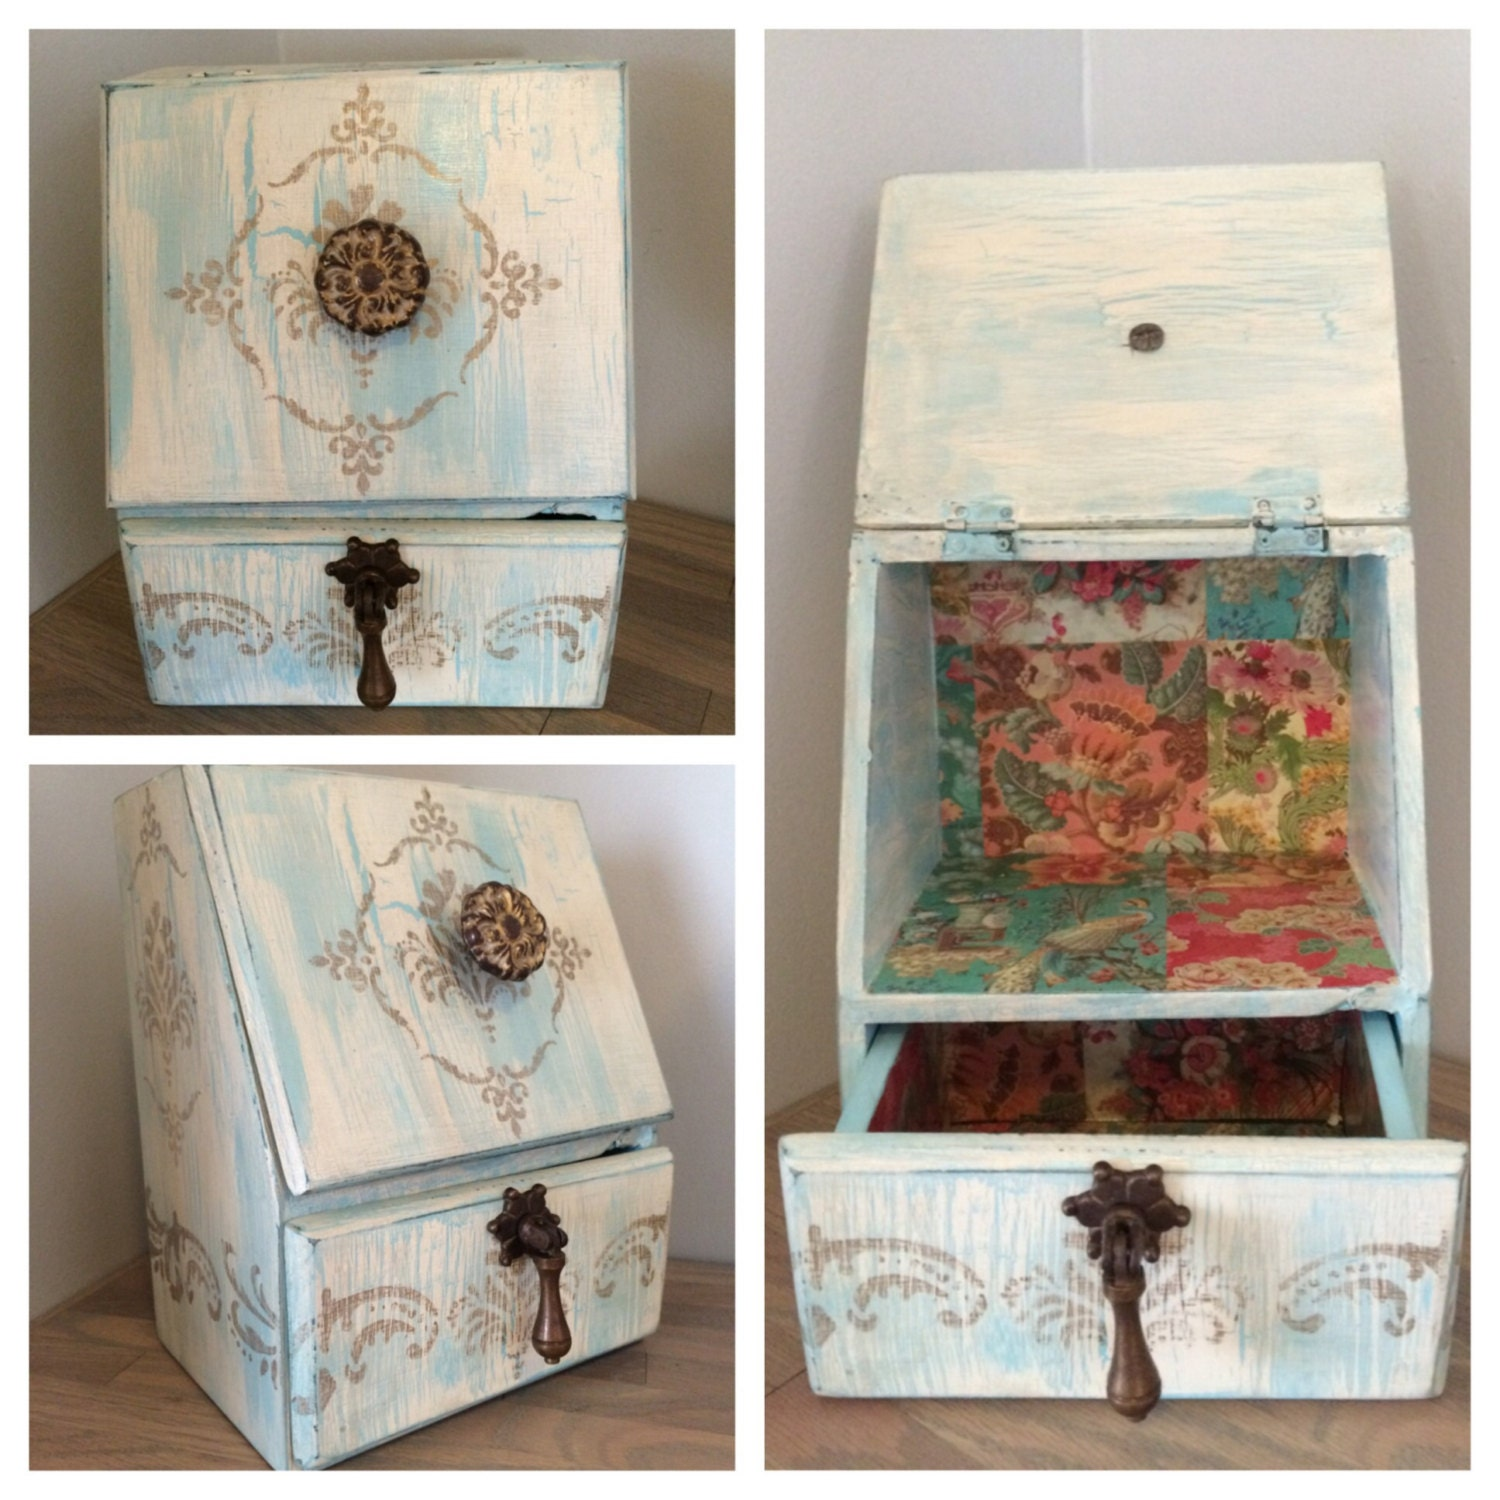 shabby chic decorative storage box. Black Bedroom Furniture Sets. Home Design Ideas